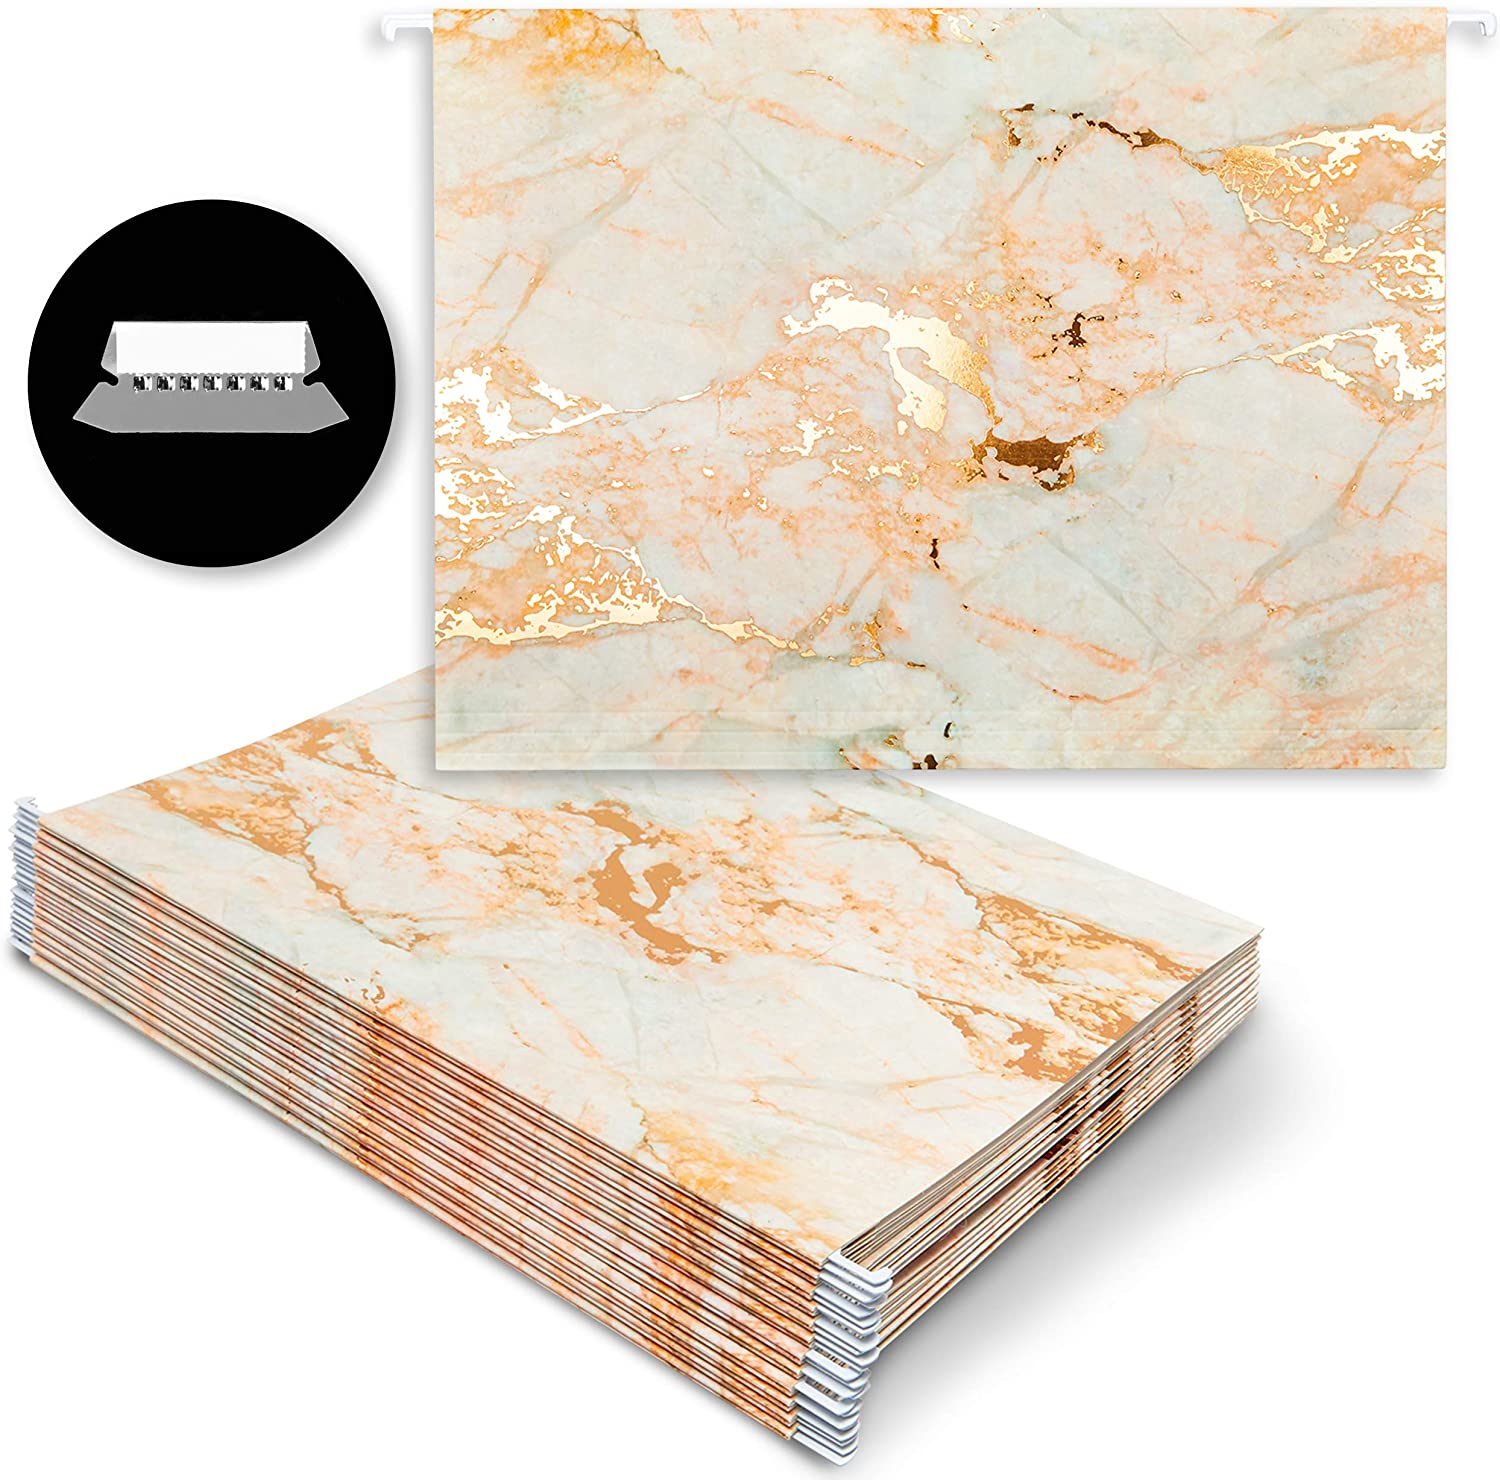 Hanging File Folders, Marble Office Accessories (11.5 x 9.5 in, 12 Pack)